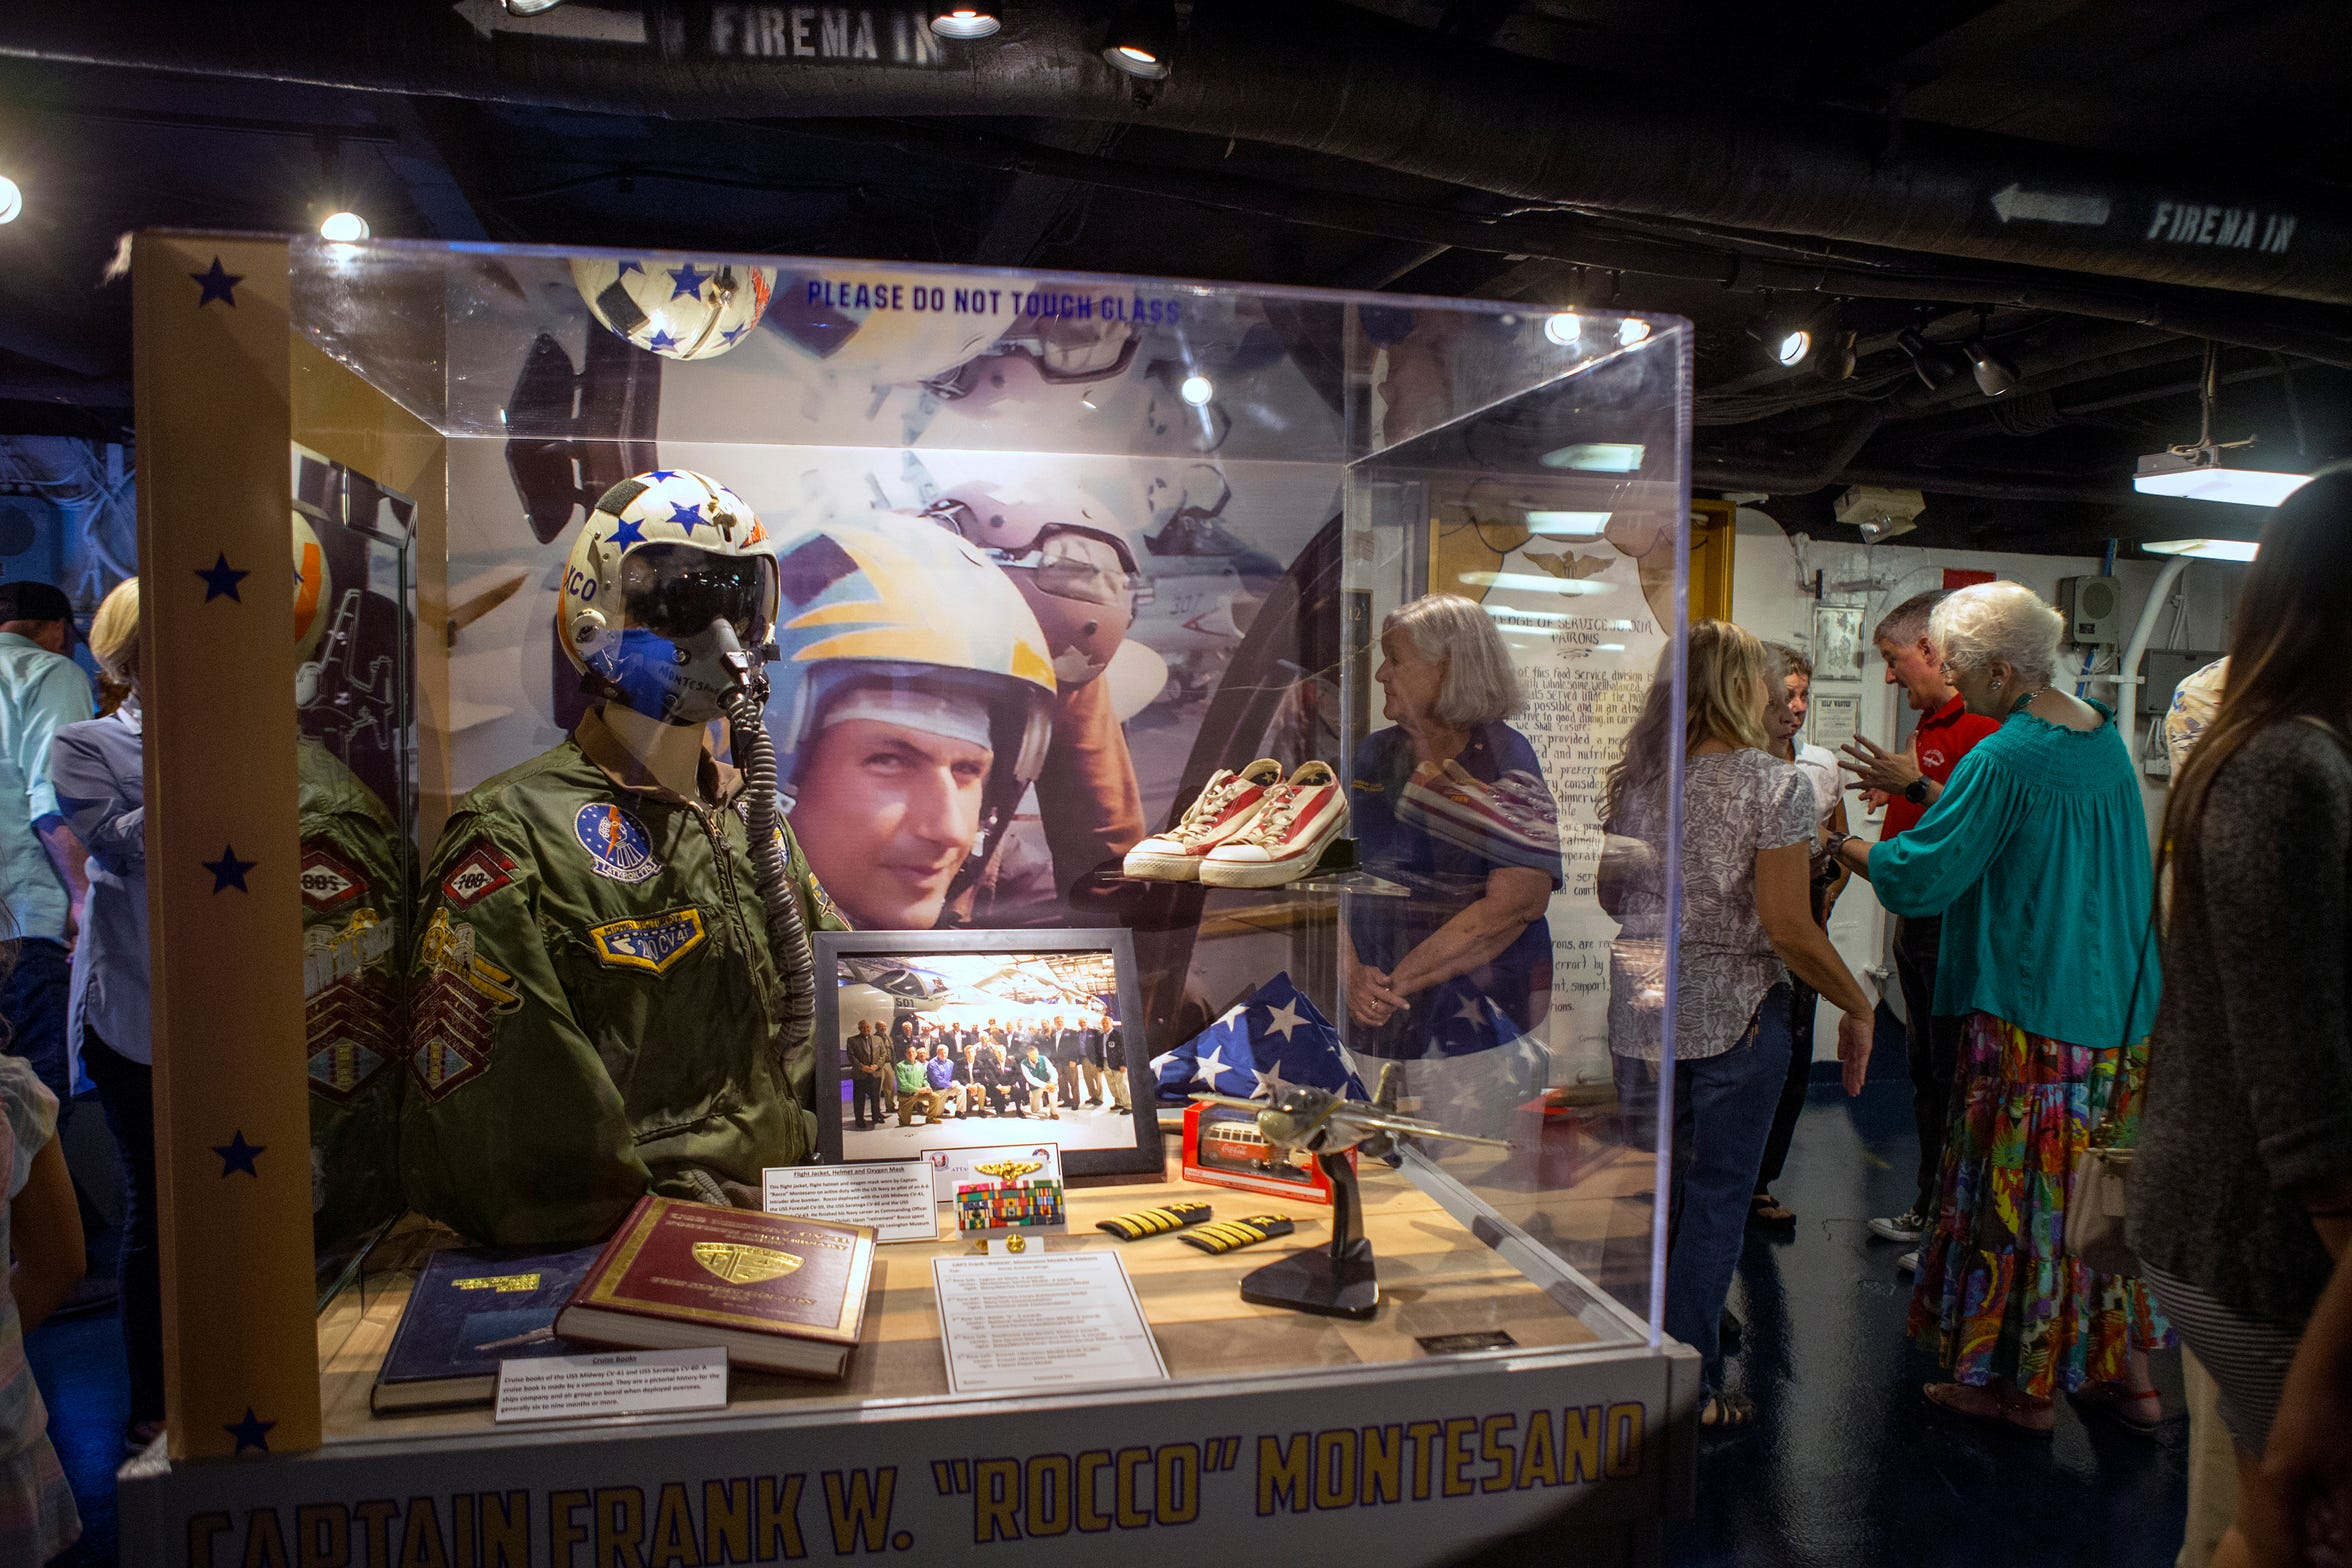 The Lexington Museum on the Bay unveiled a new Carrier Row exhibit, which was dedicated to former executive director Capt. Frank